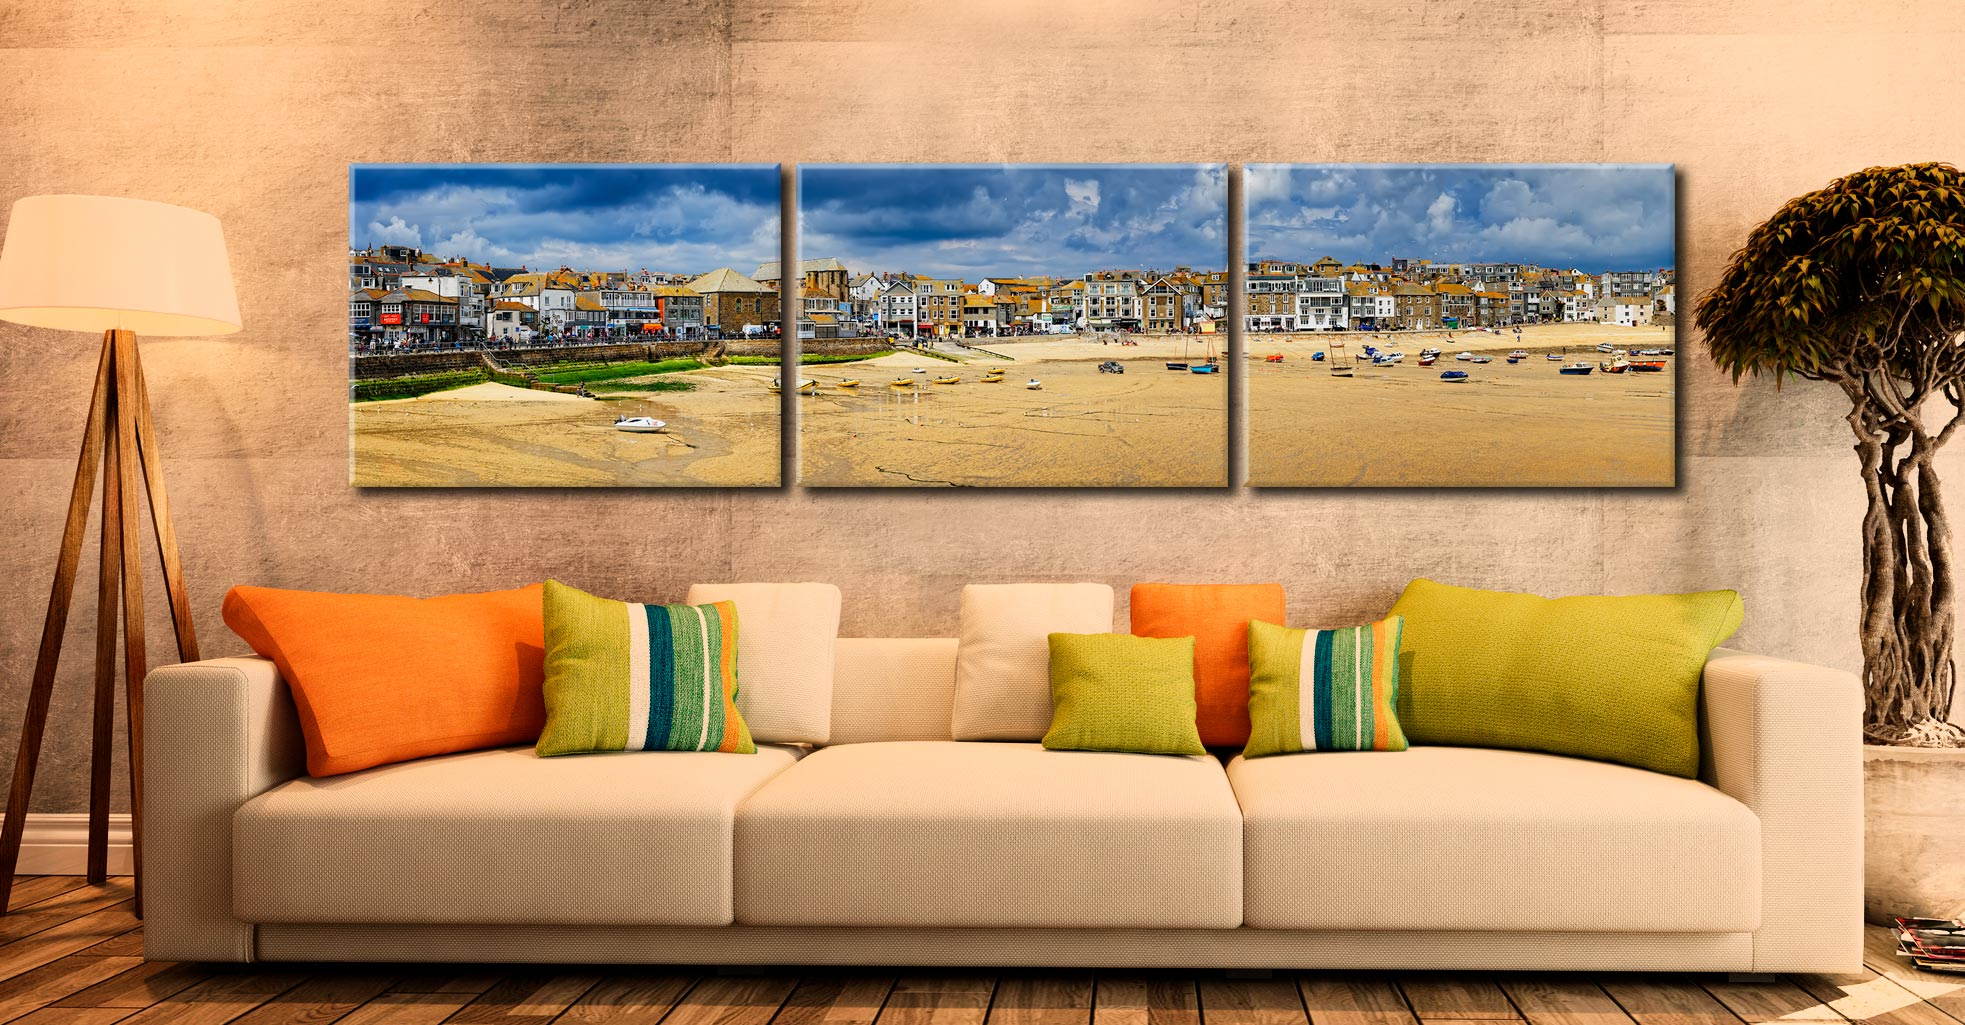 St Ives Cloudy Panorama 2 - 3 Panel Canvas on Wall